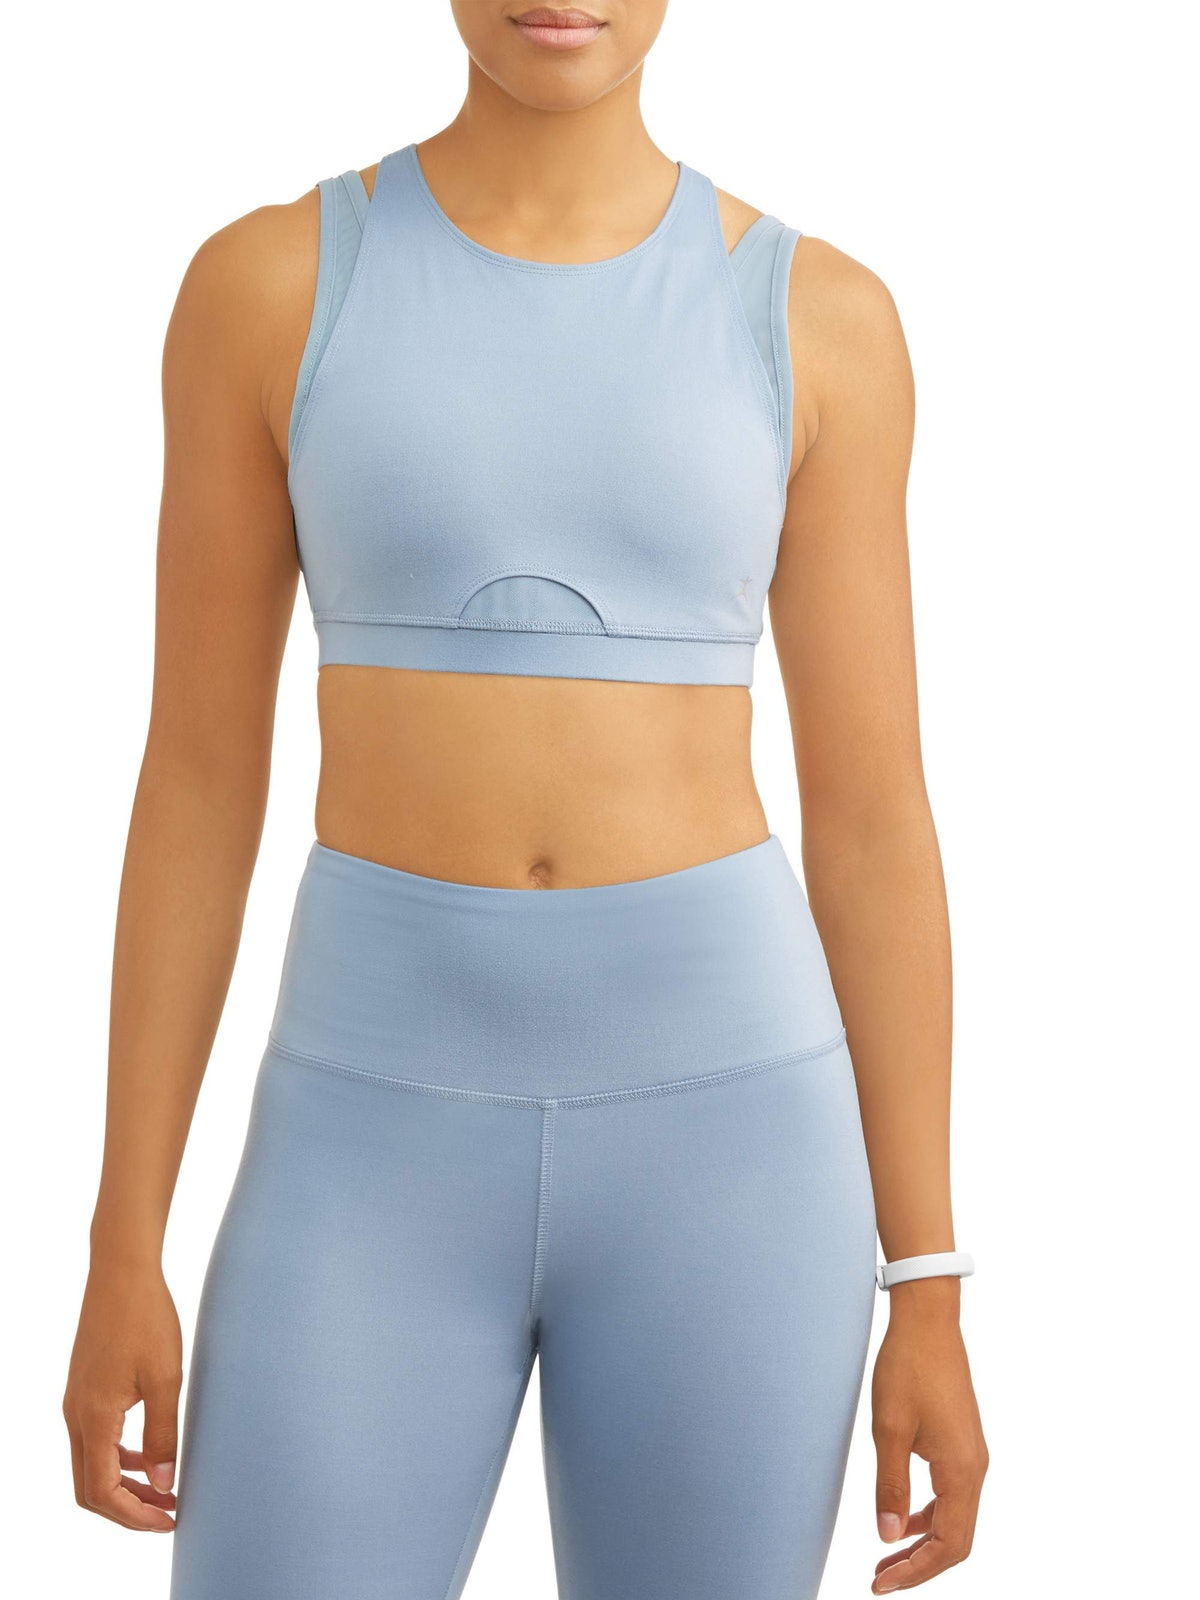 Danskin Women's Premium Active High Impact Double Layer Sports Bra with Back Detail